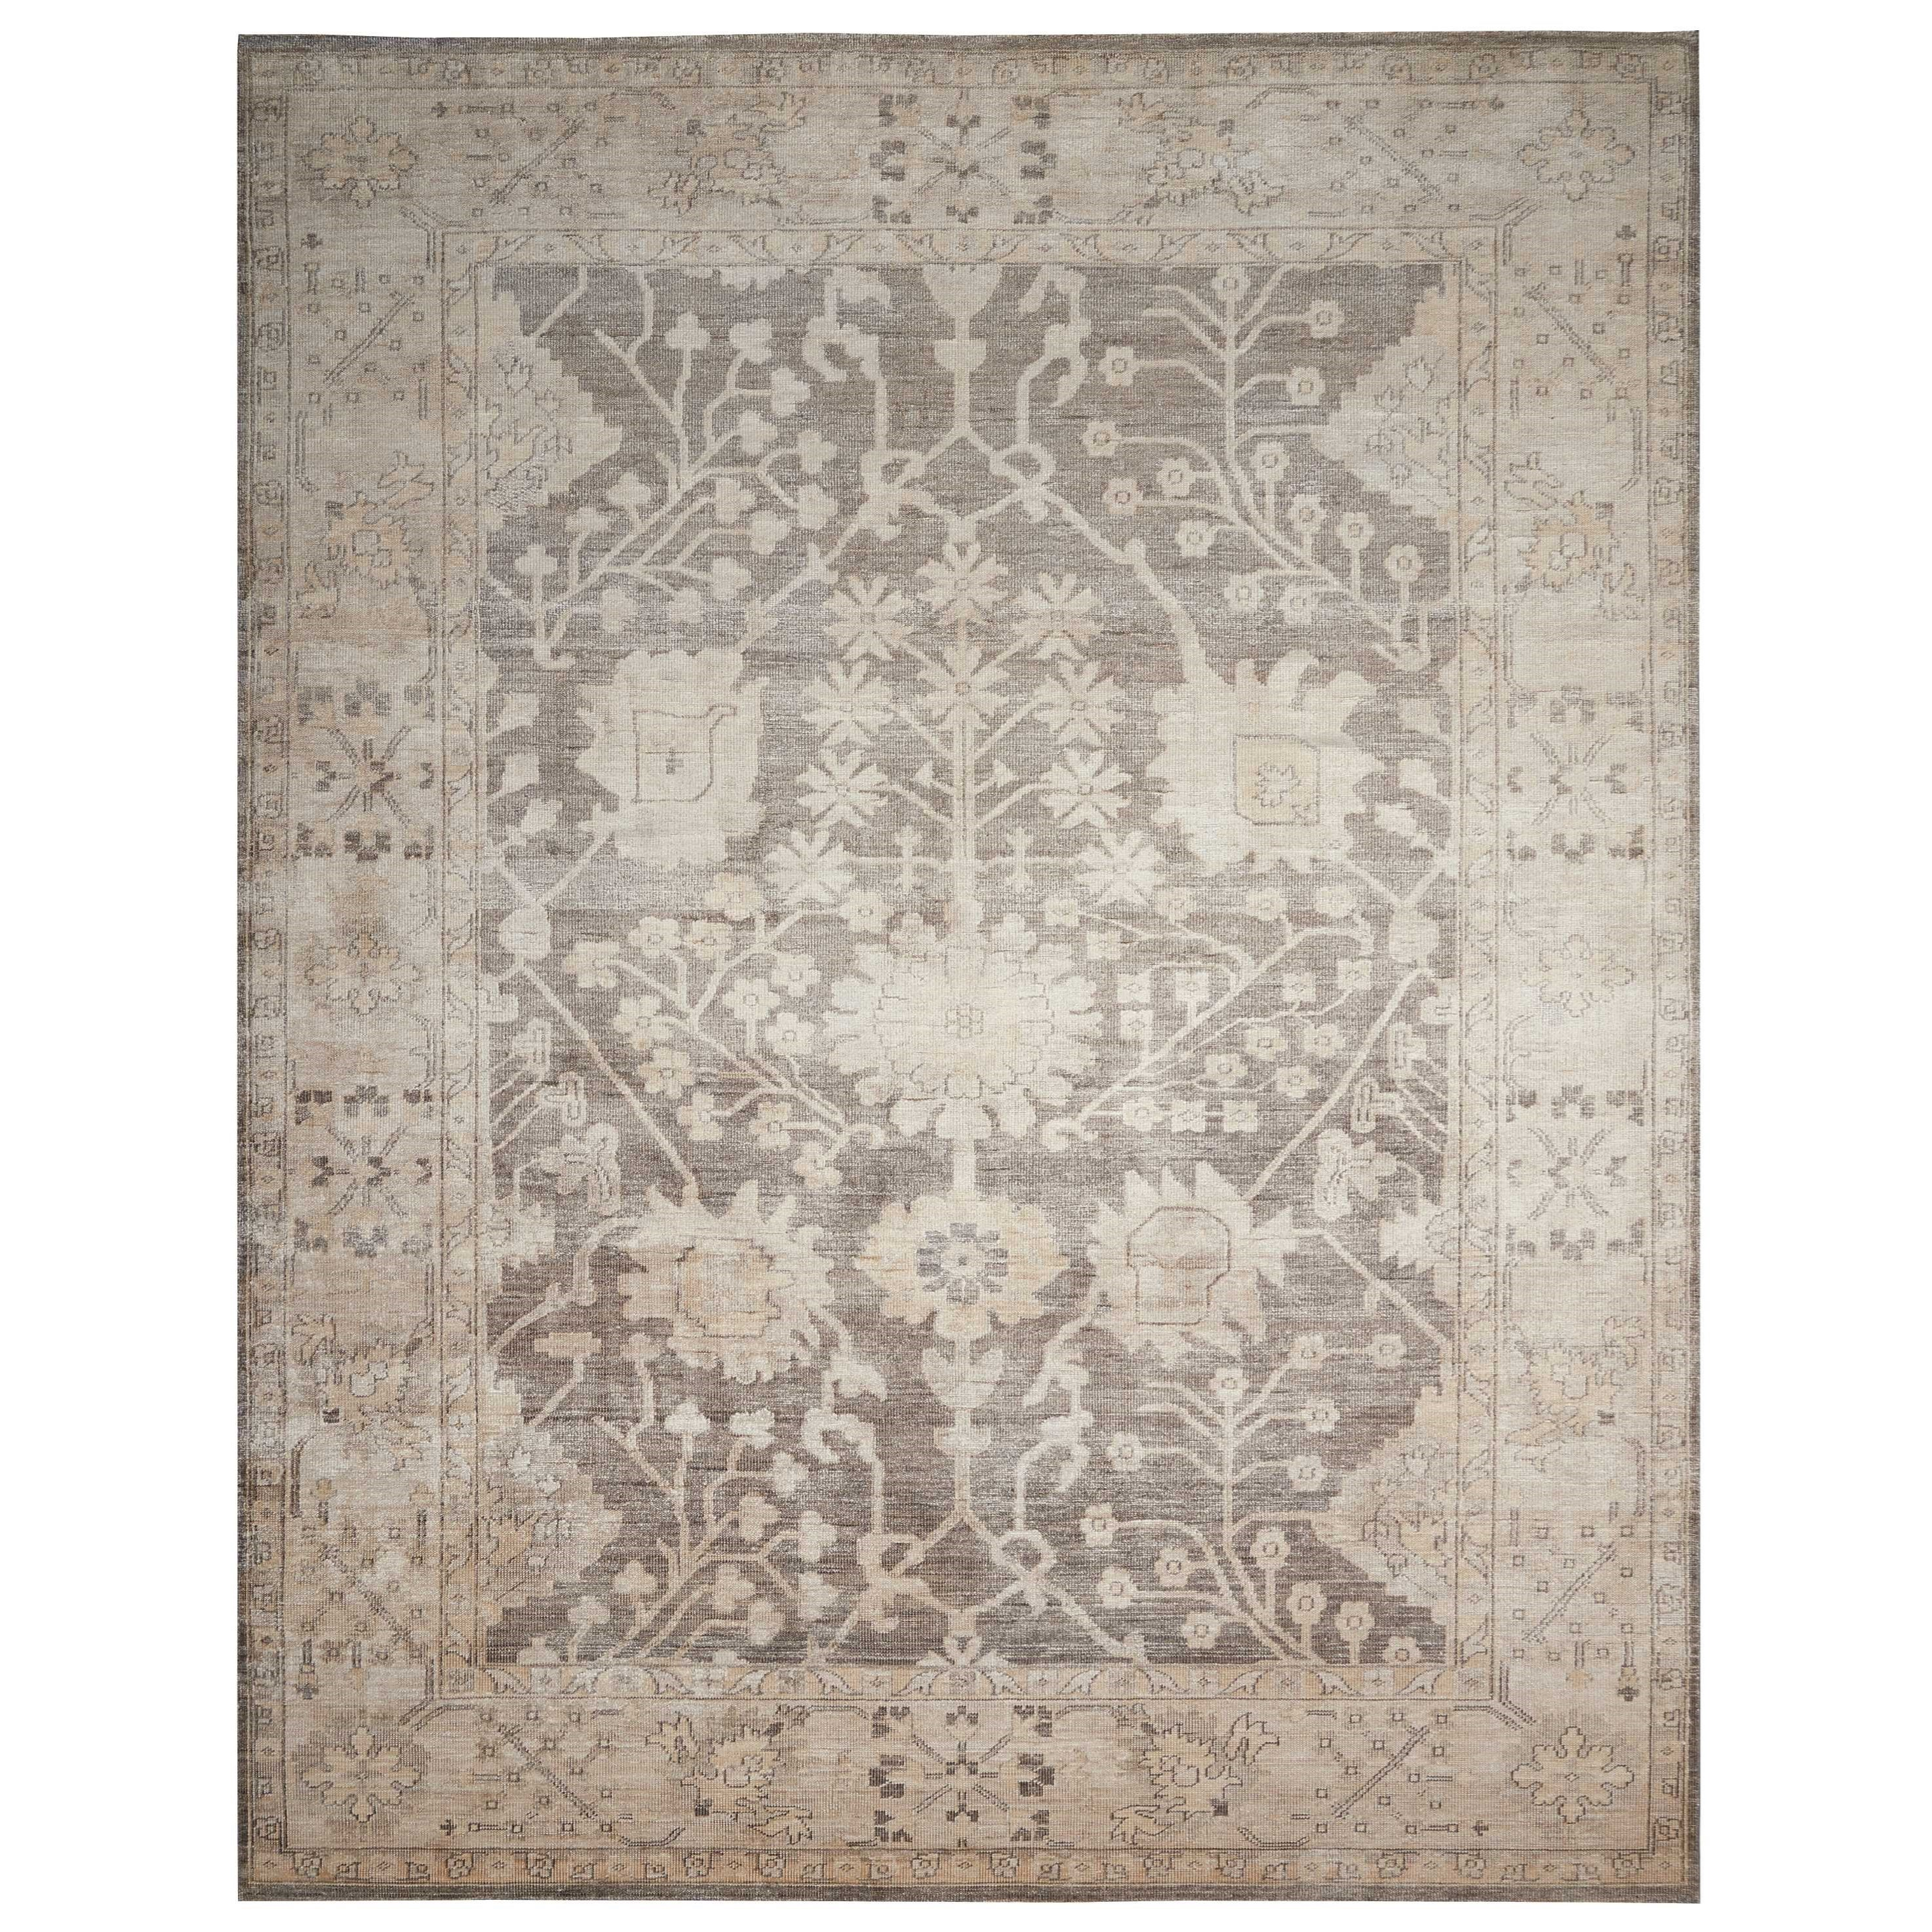 "Aldora1 9'9"" X 13'9"" Aubergine Rug by Nourison at Home Collections Furniture"